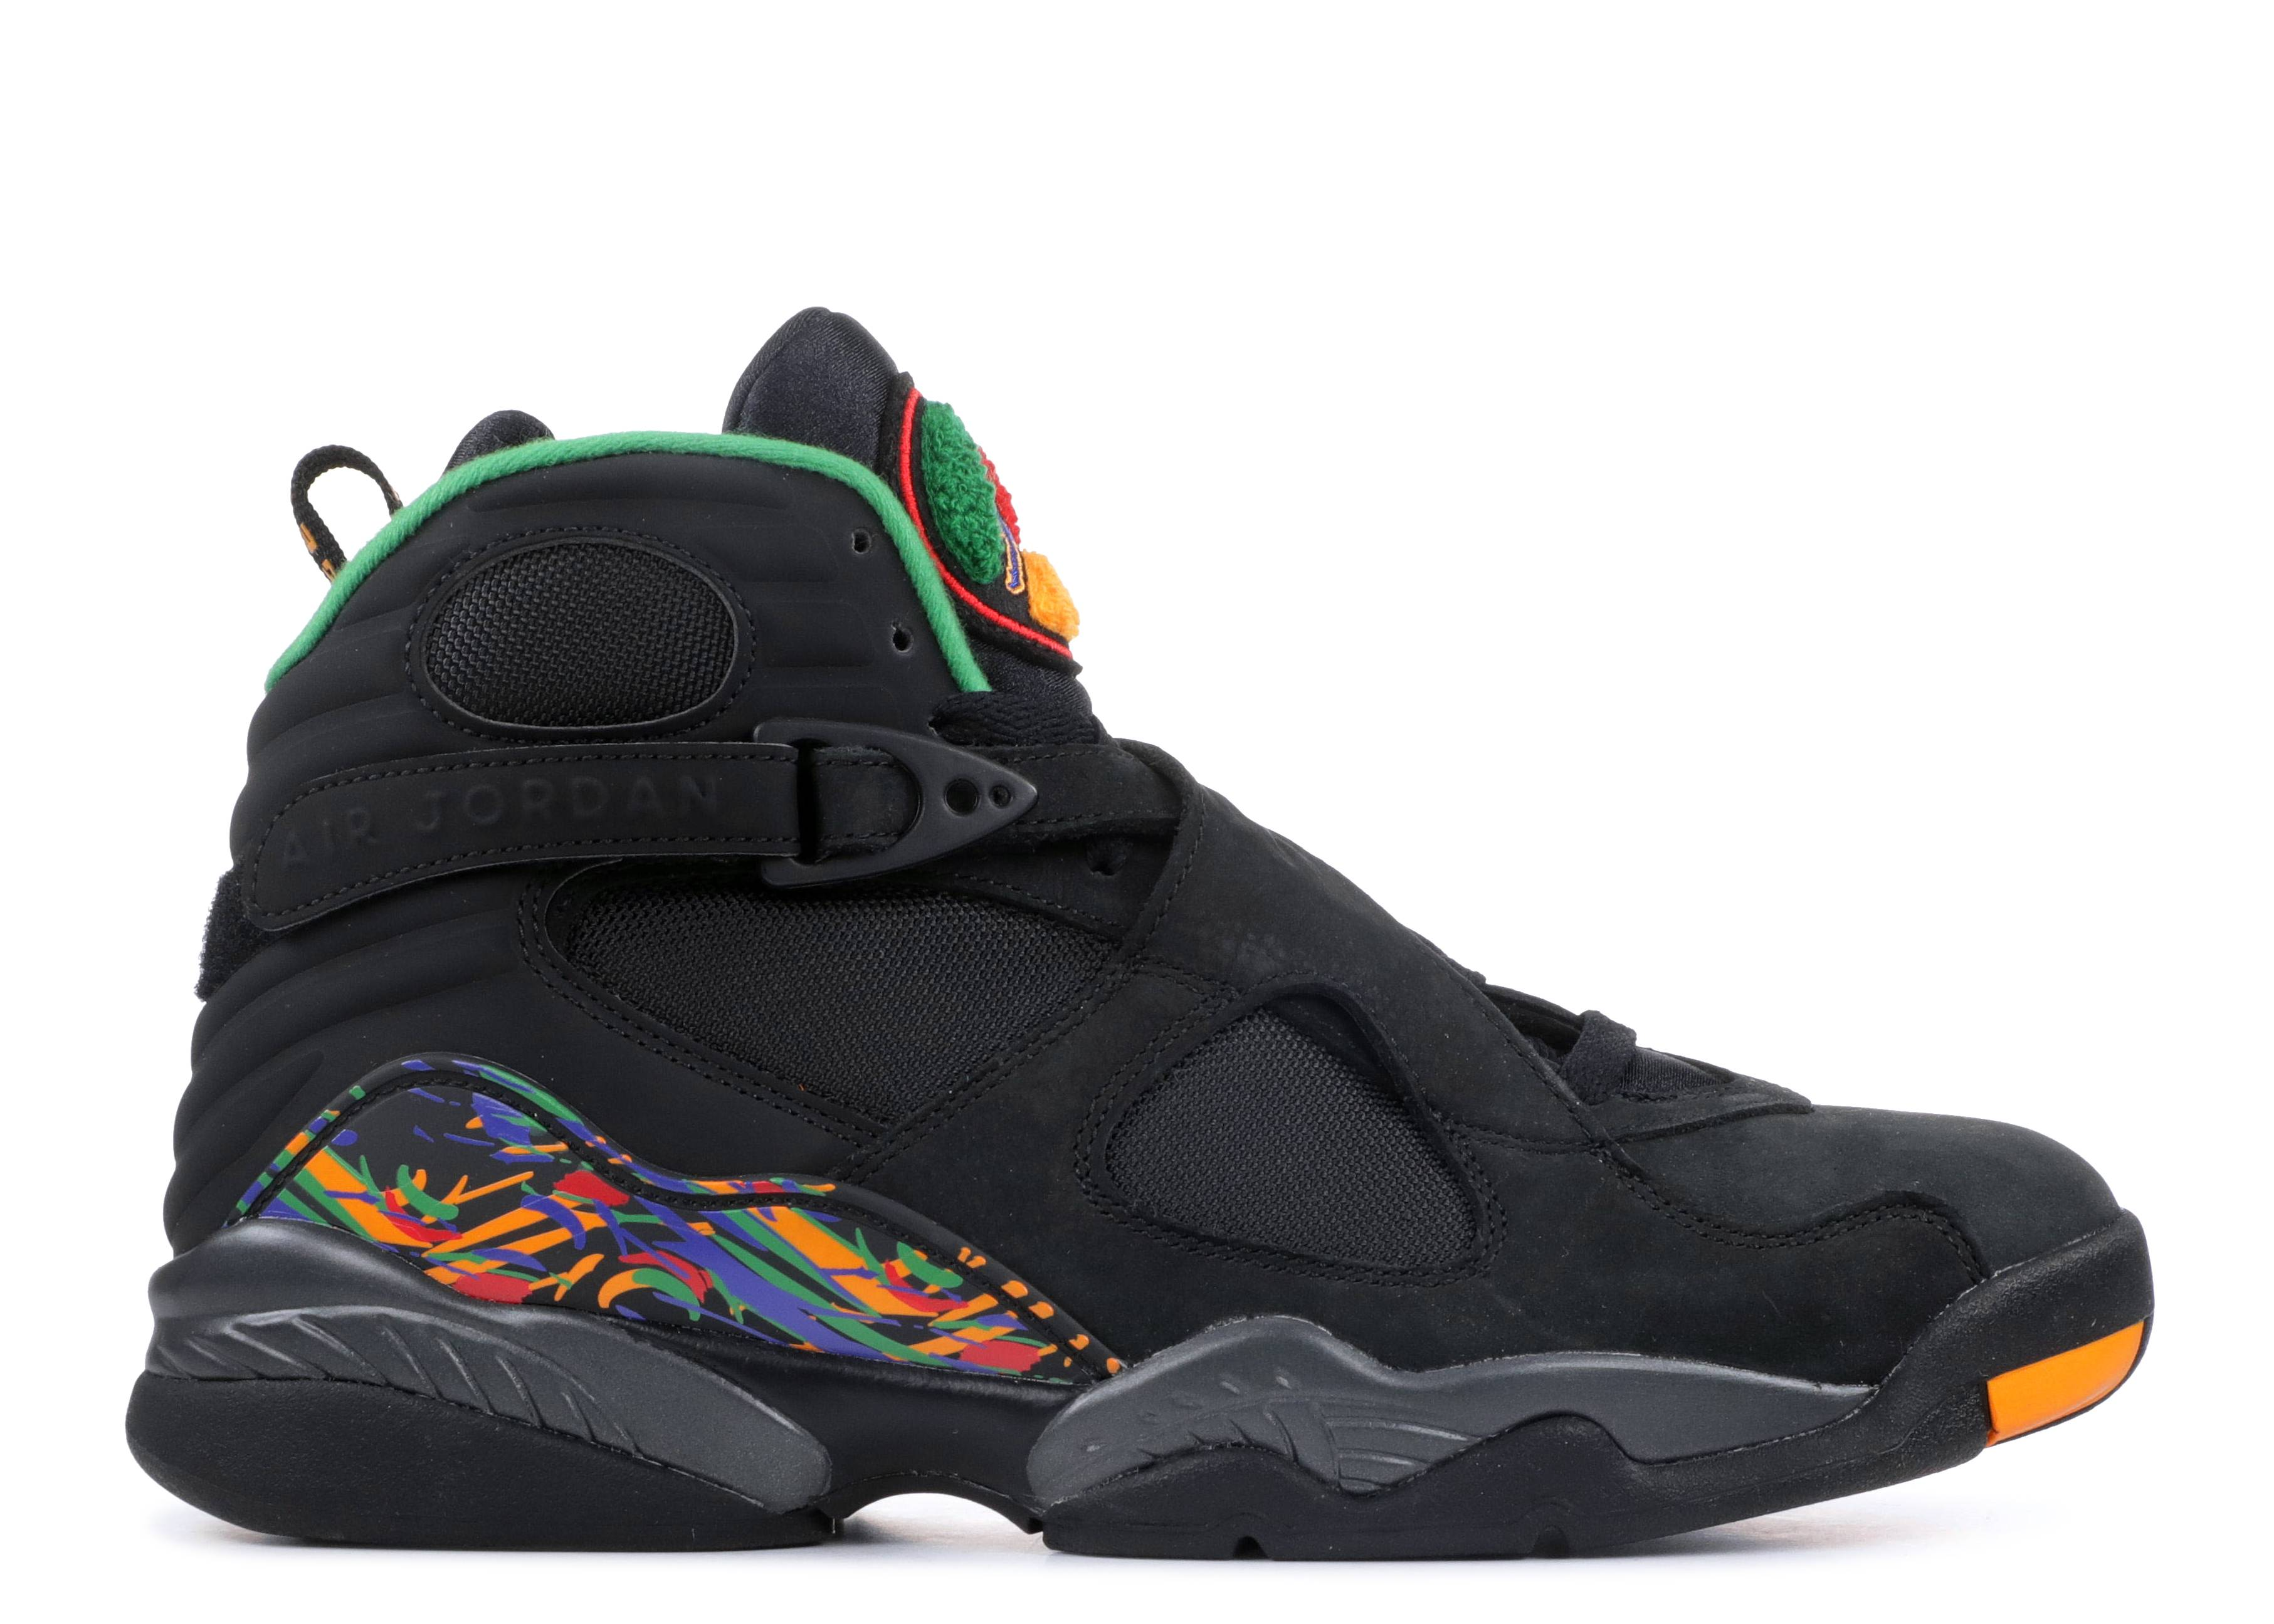 buy online 1e620 9809f Air Jordan 8 (VIII) Shoes - Nike   Flight Club